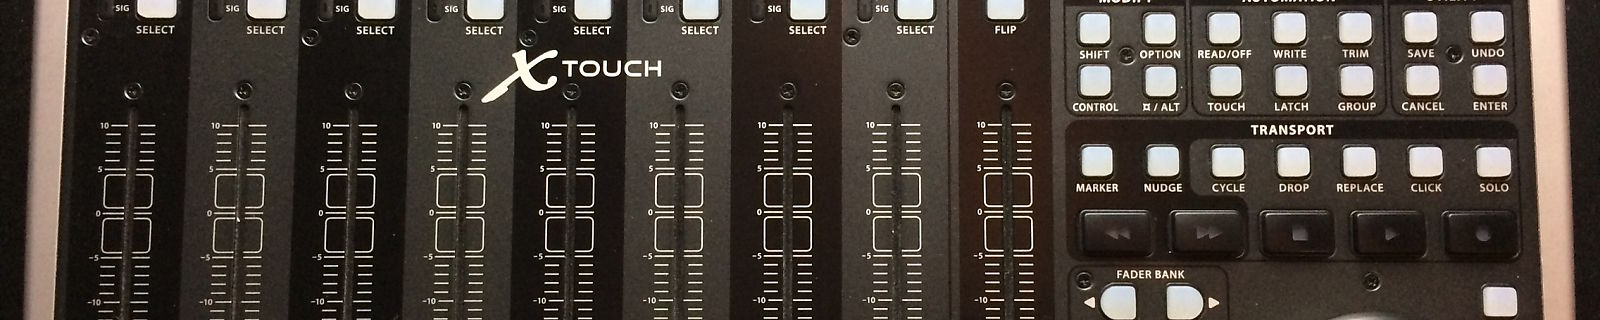 Behringer X Touch Universal Daw Control Surface Reverb